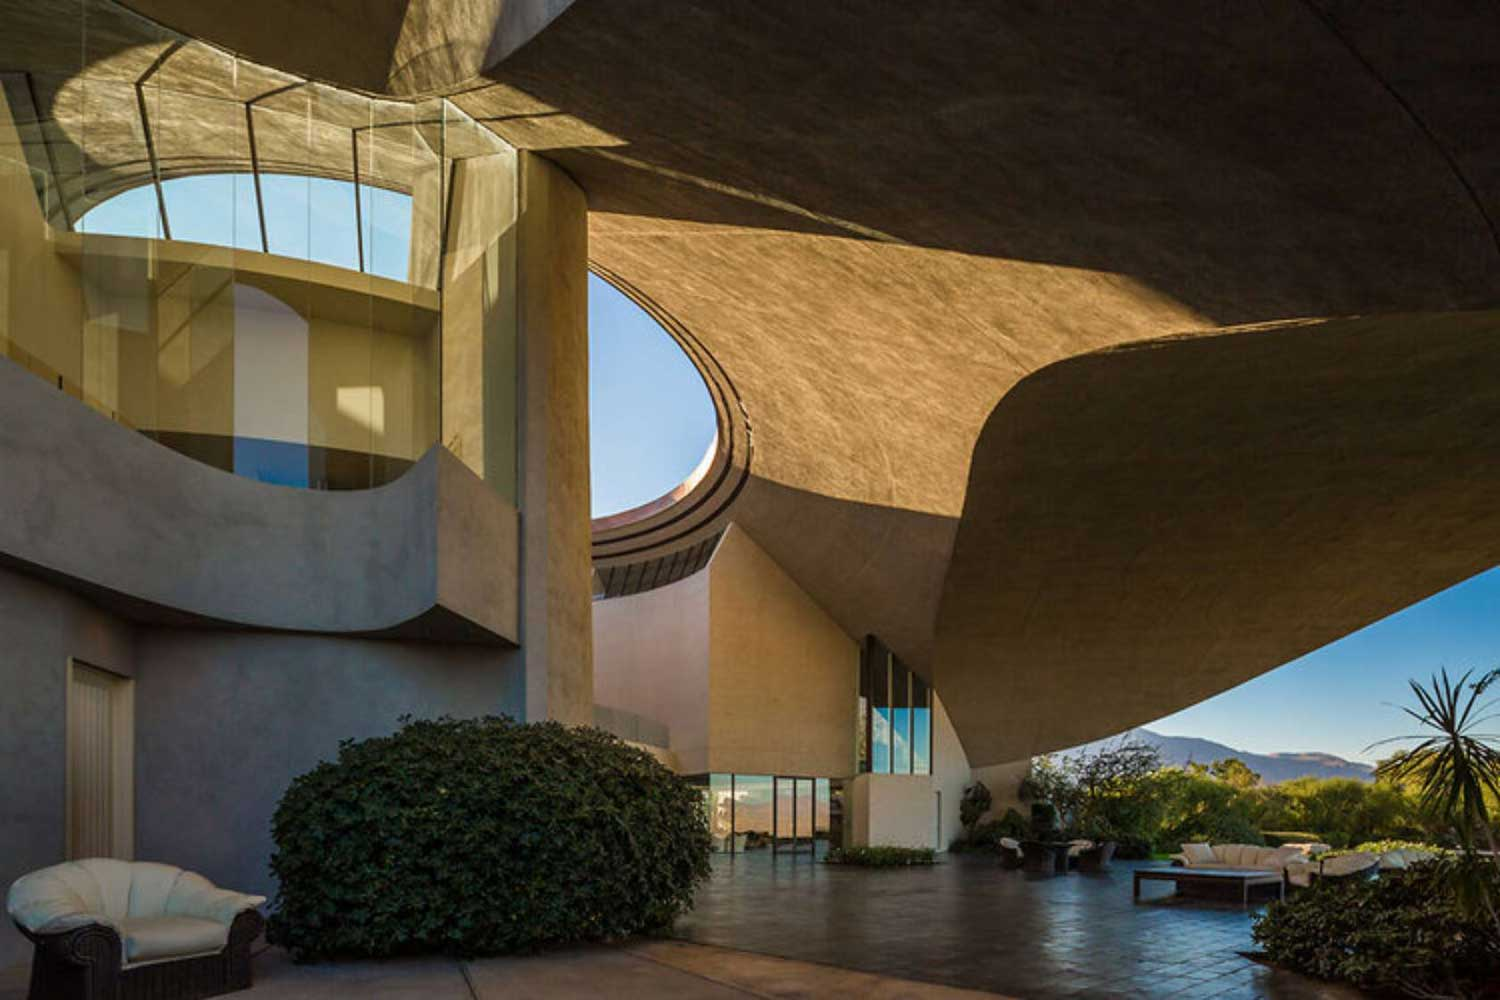 Bob Hope's house by John Lautner. Palm Springs Modernism Week 2014 | Yellowtrace